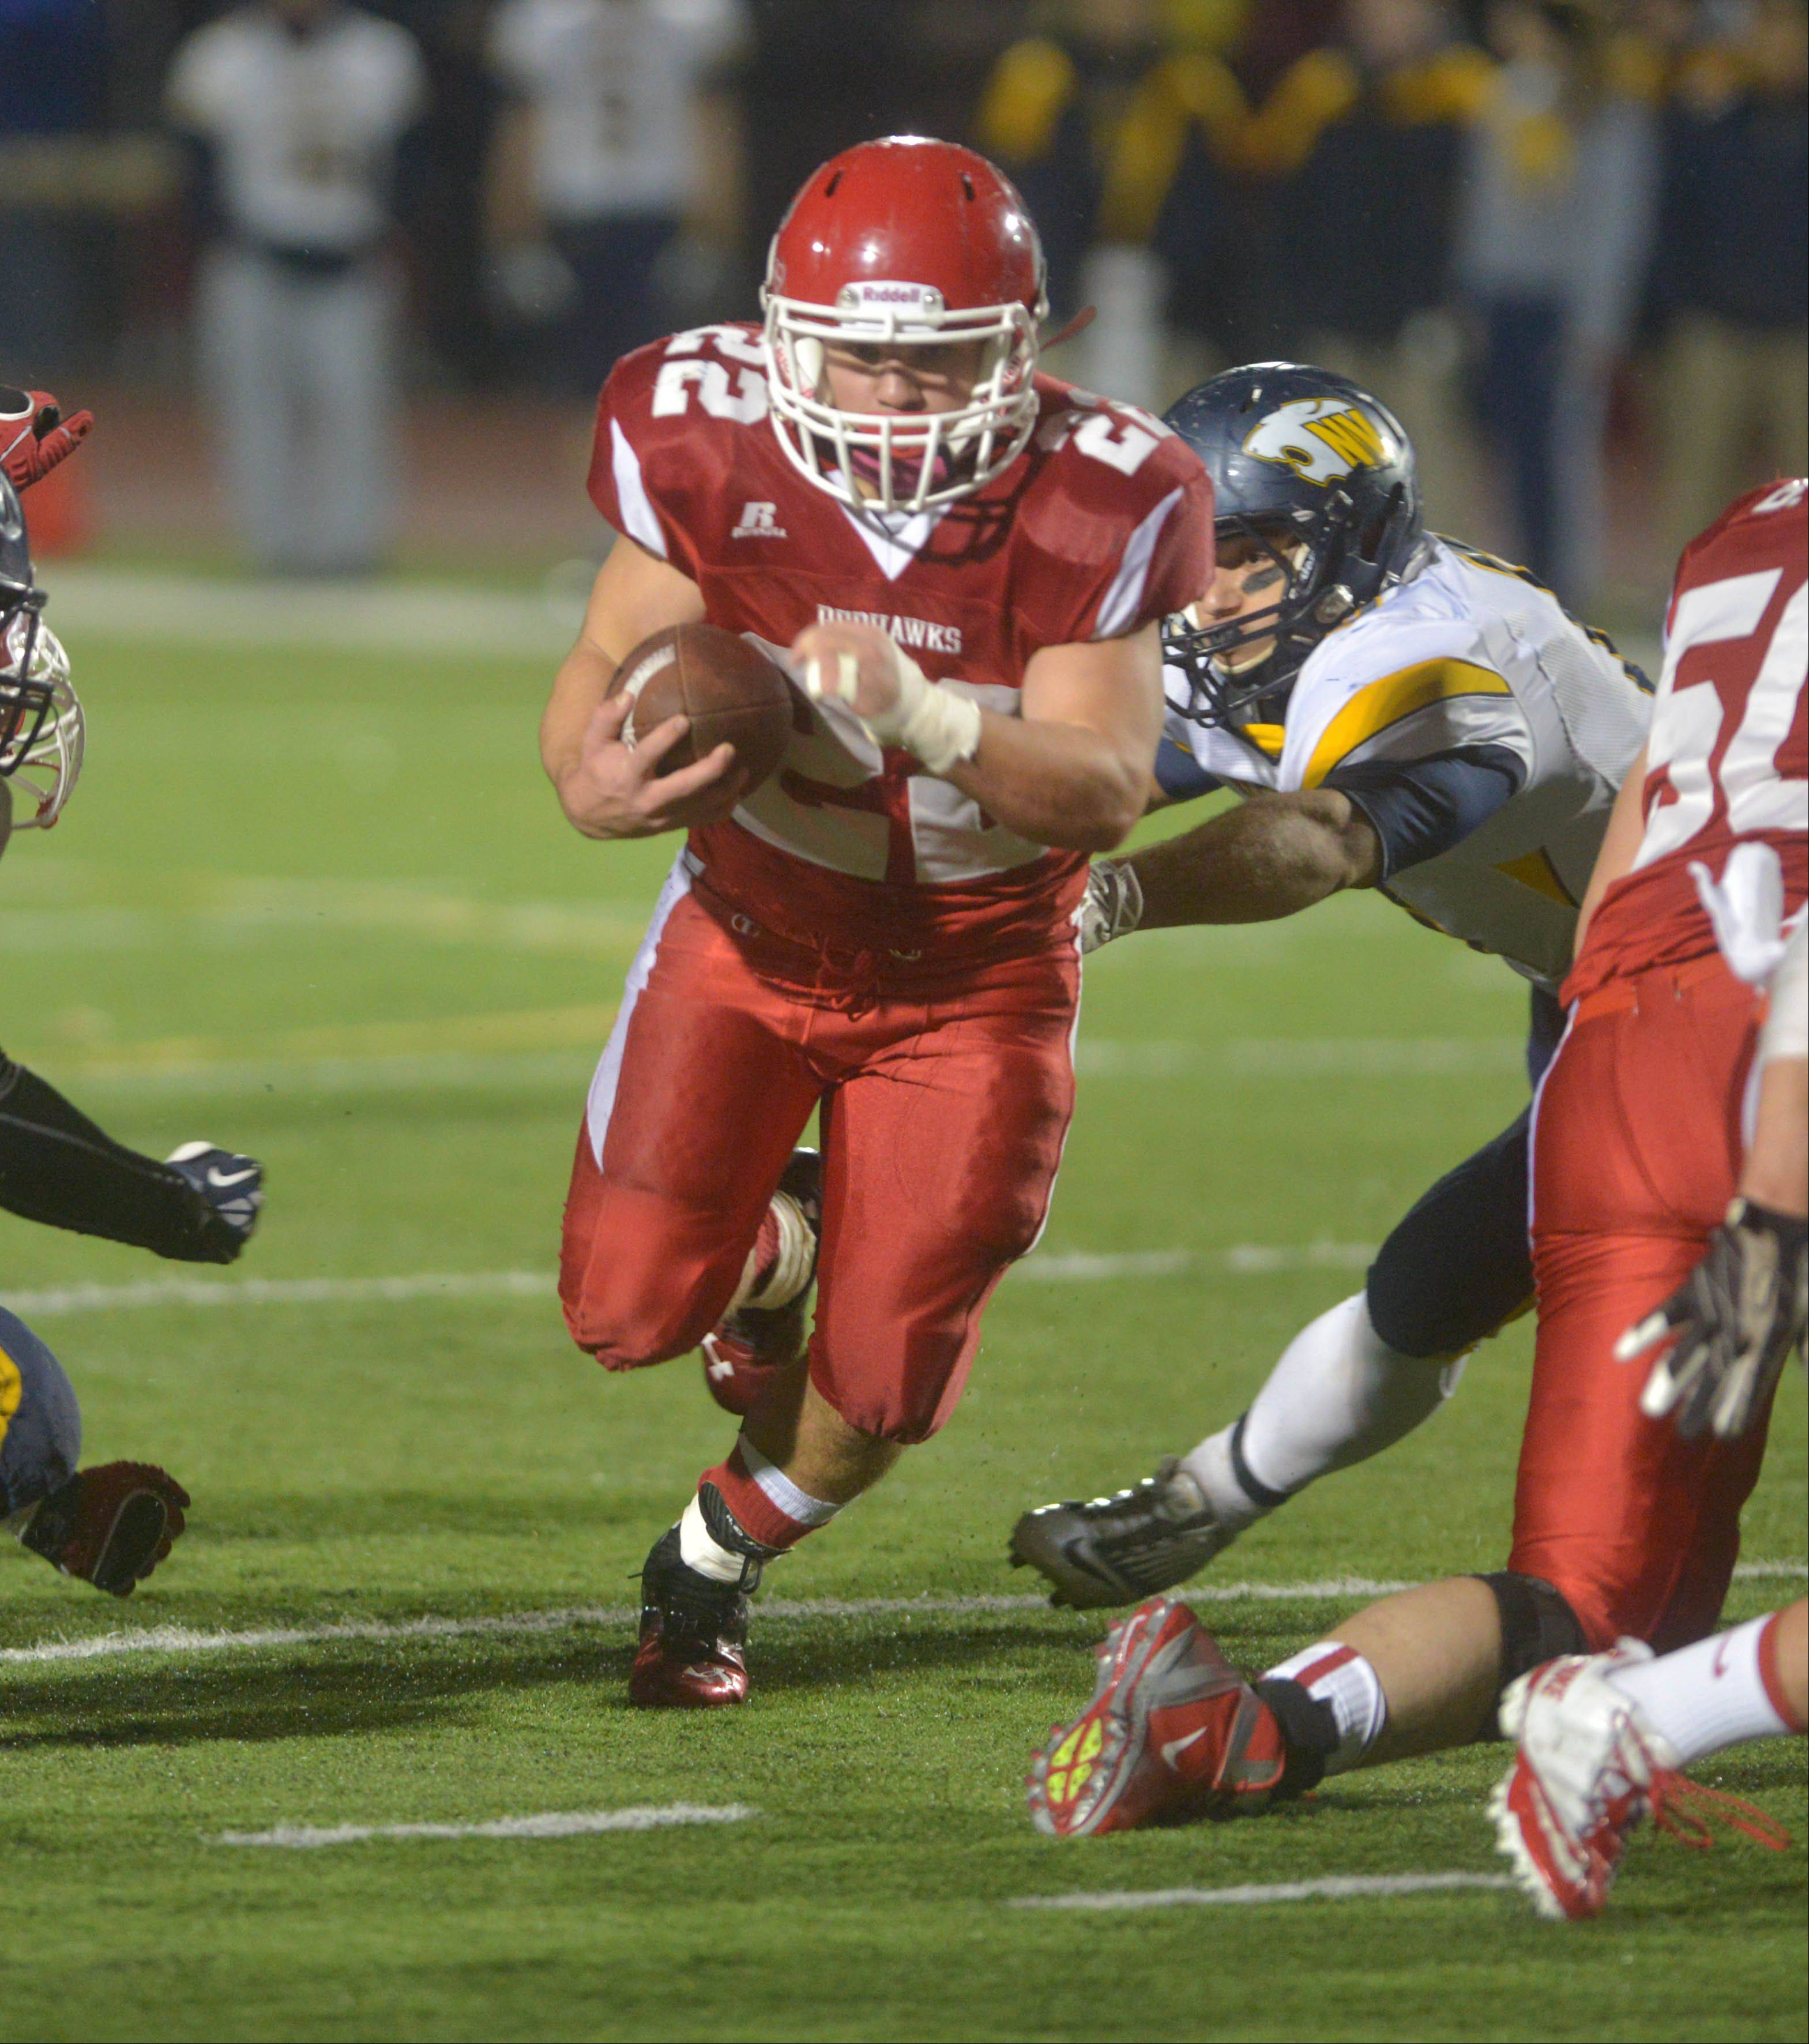 Naperville Central rolls into 8A semis